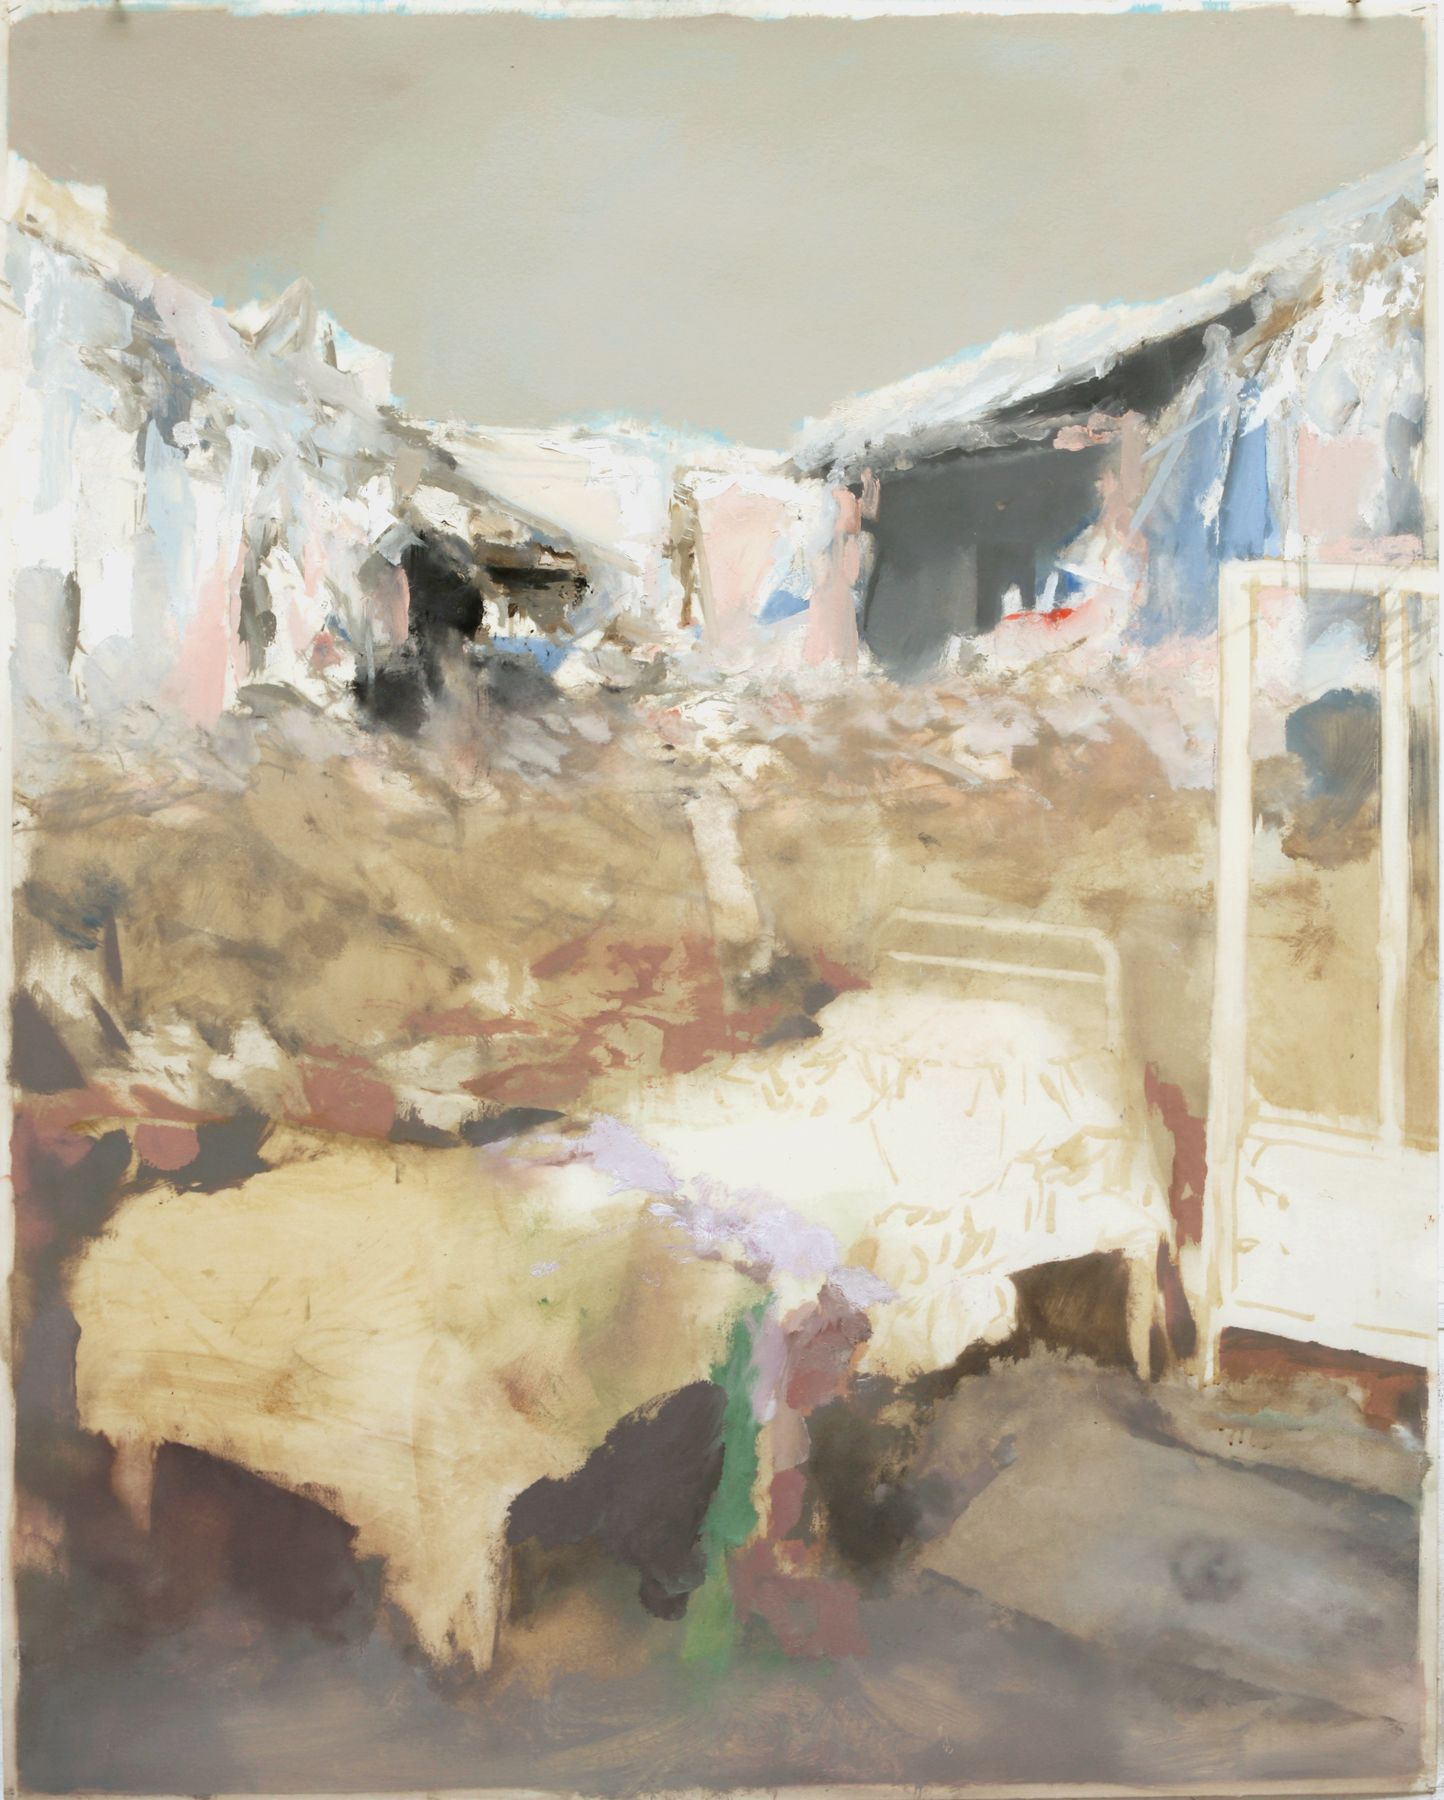 Simon Edmondson, Bedroom, 2010